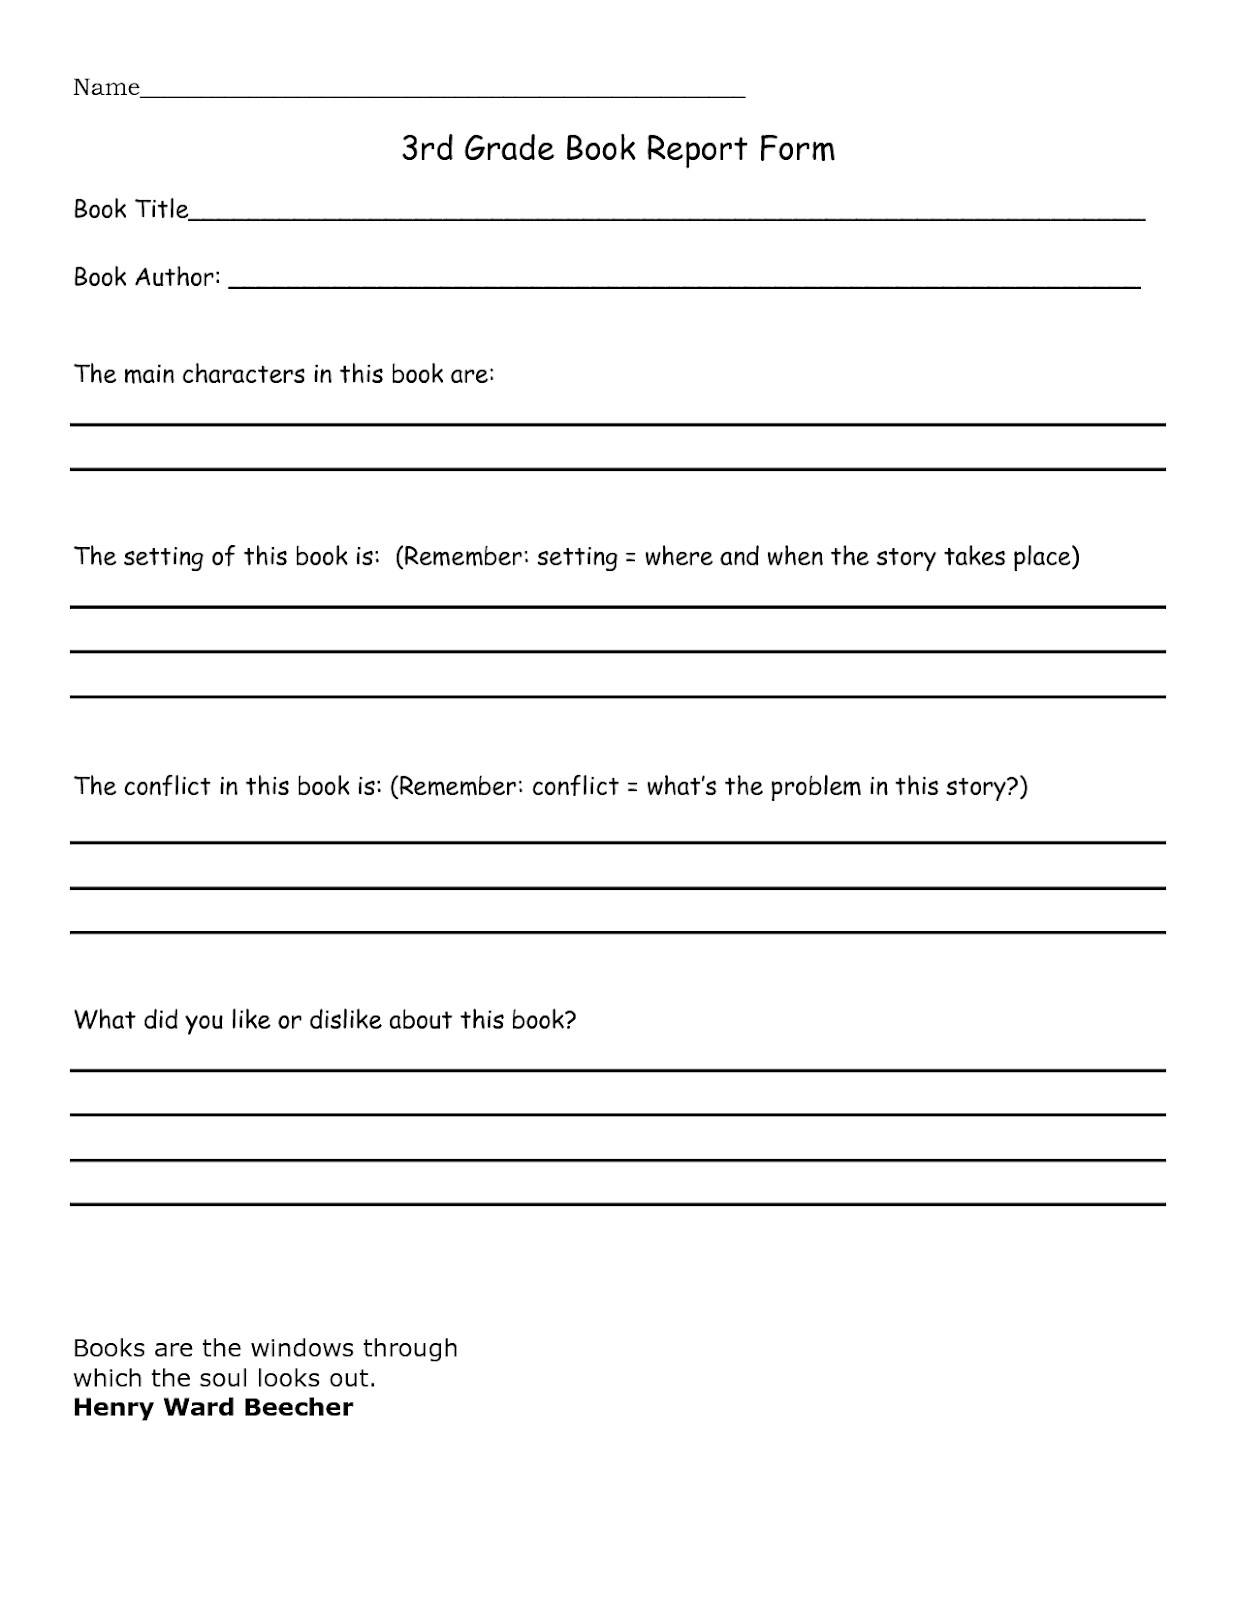 3rd grade book report template